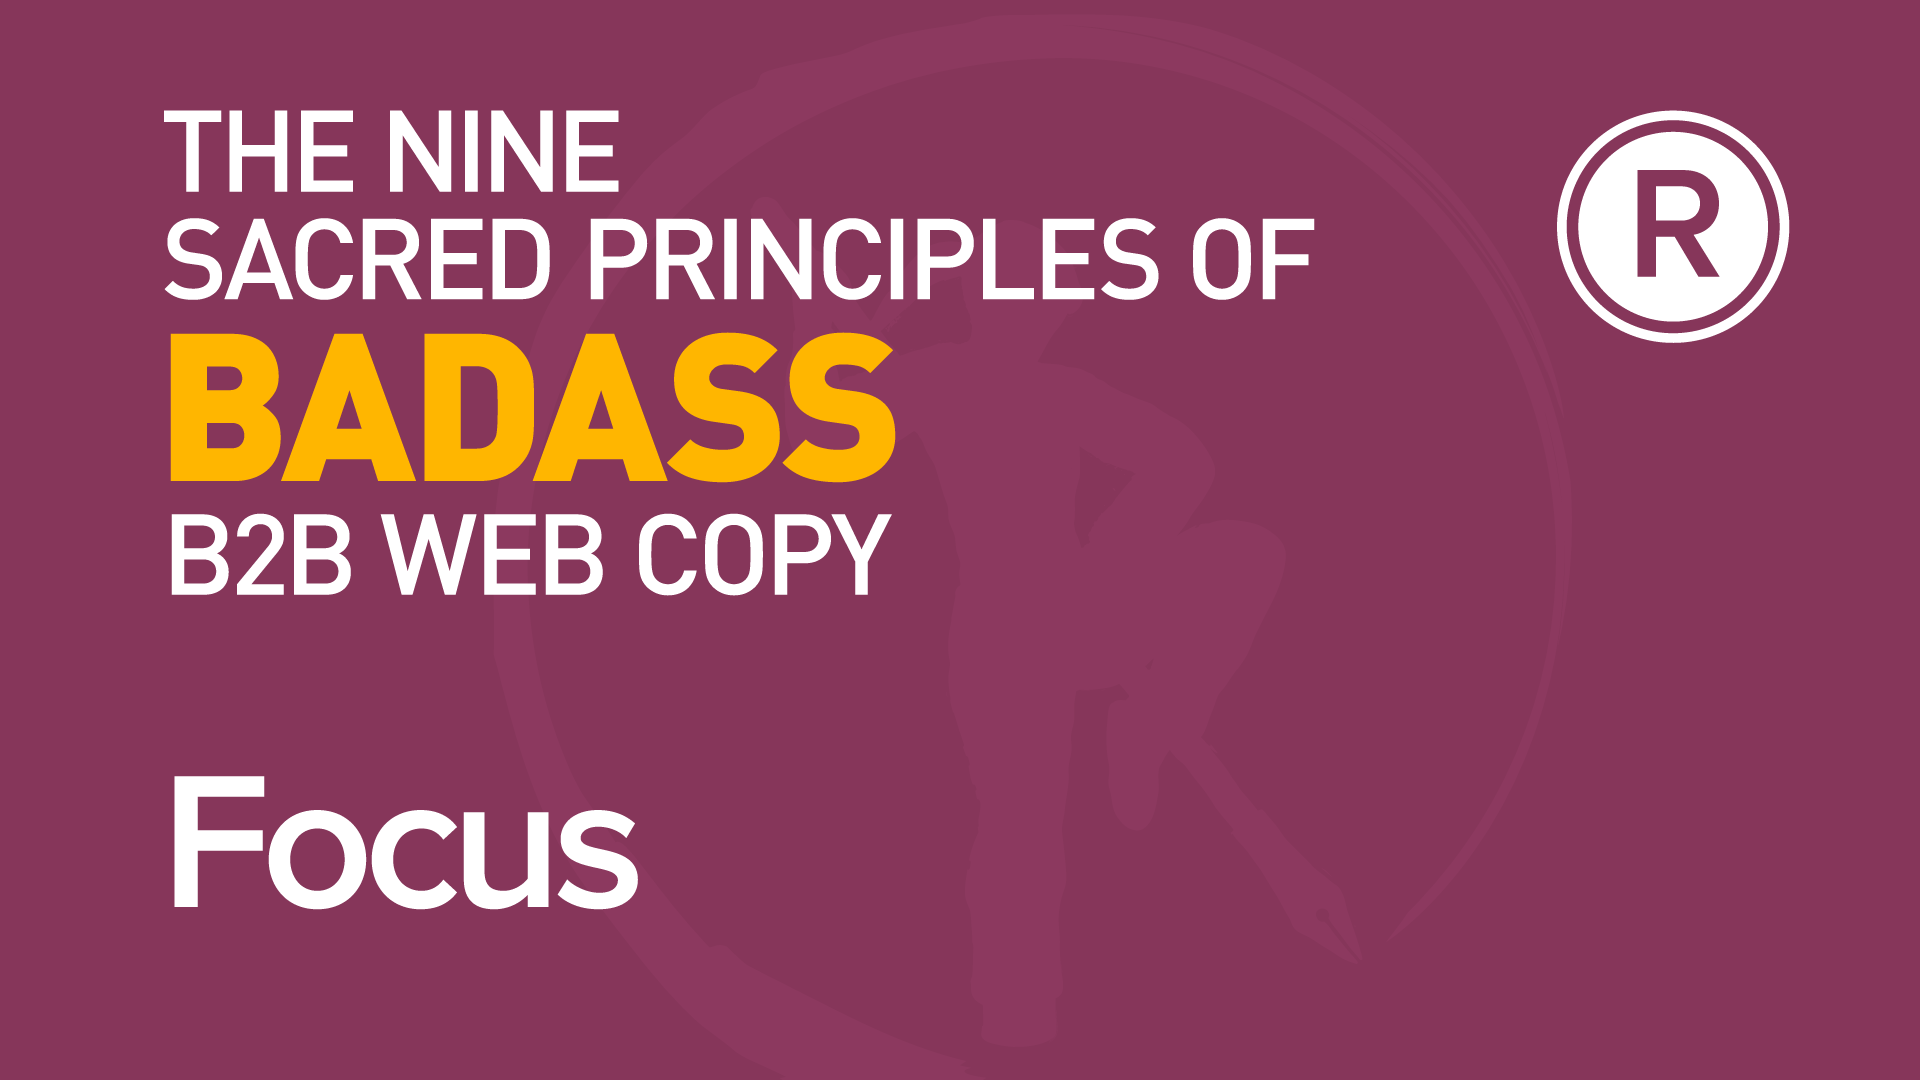 2nd principle of badass B2B web copy: Focus